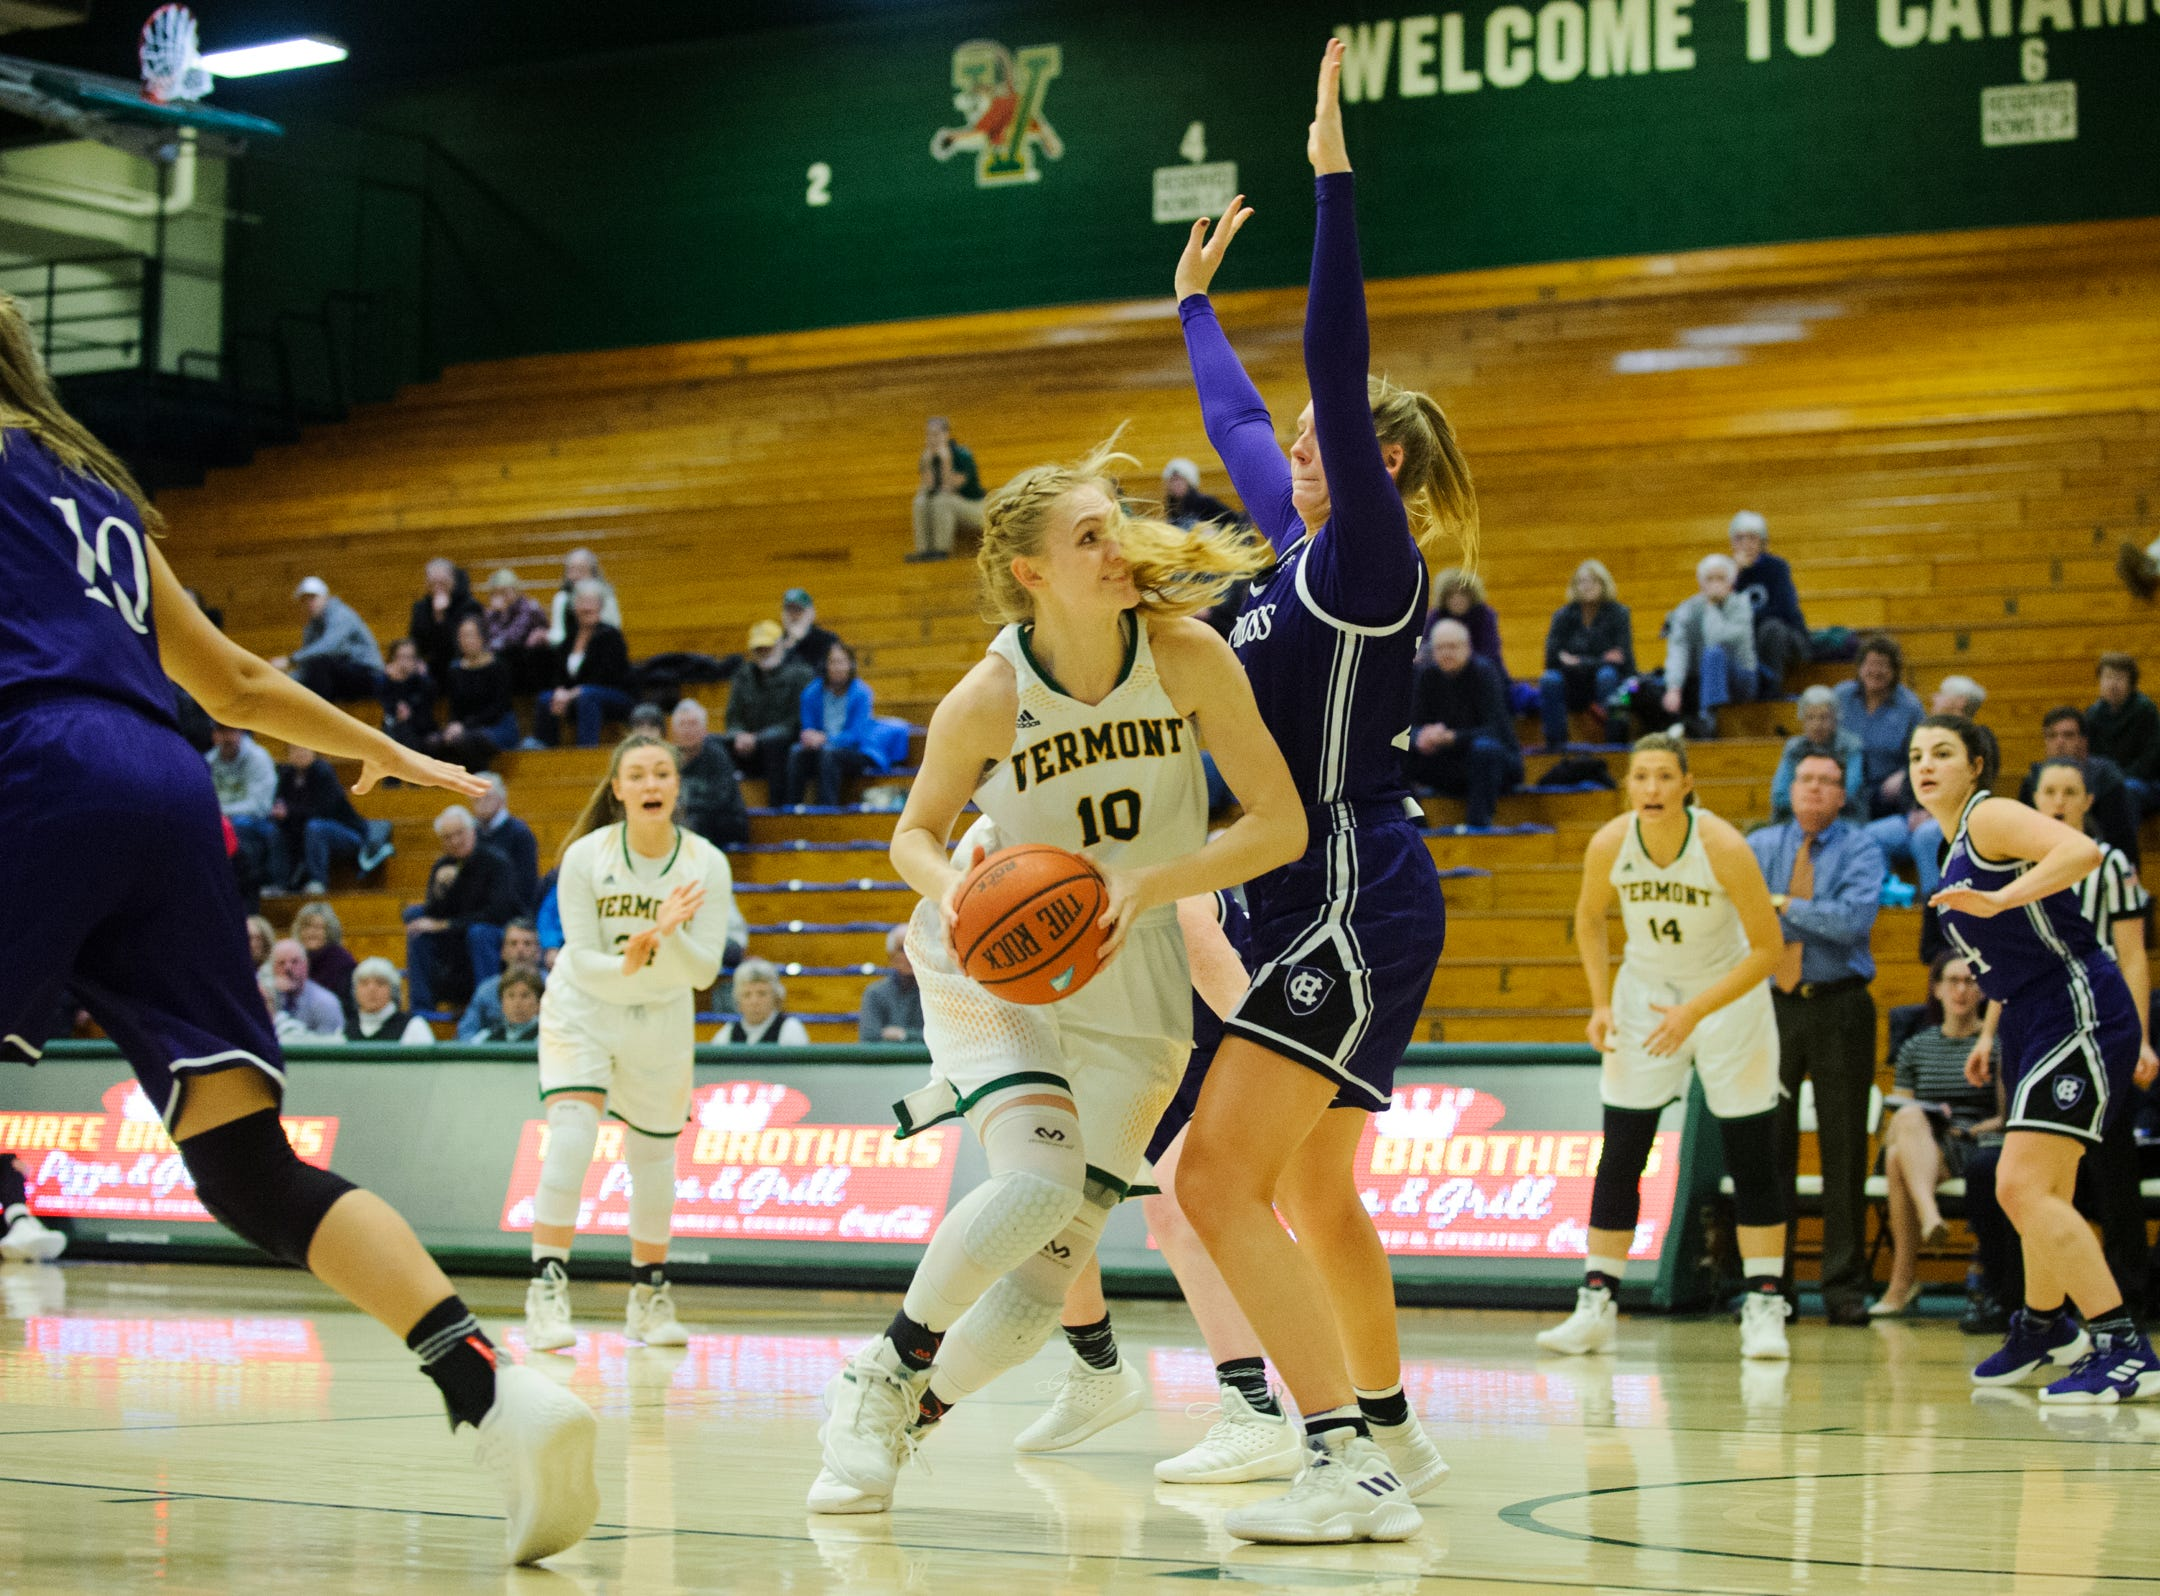 Vermont's Hannah Crymble (10) battles to shoot the ball during the women's basketball game between the Holy Cross Crusaders and the Vermont Catamounts at Patrick Gym on Wednesday night November 28, 2018 in Burlington.